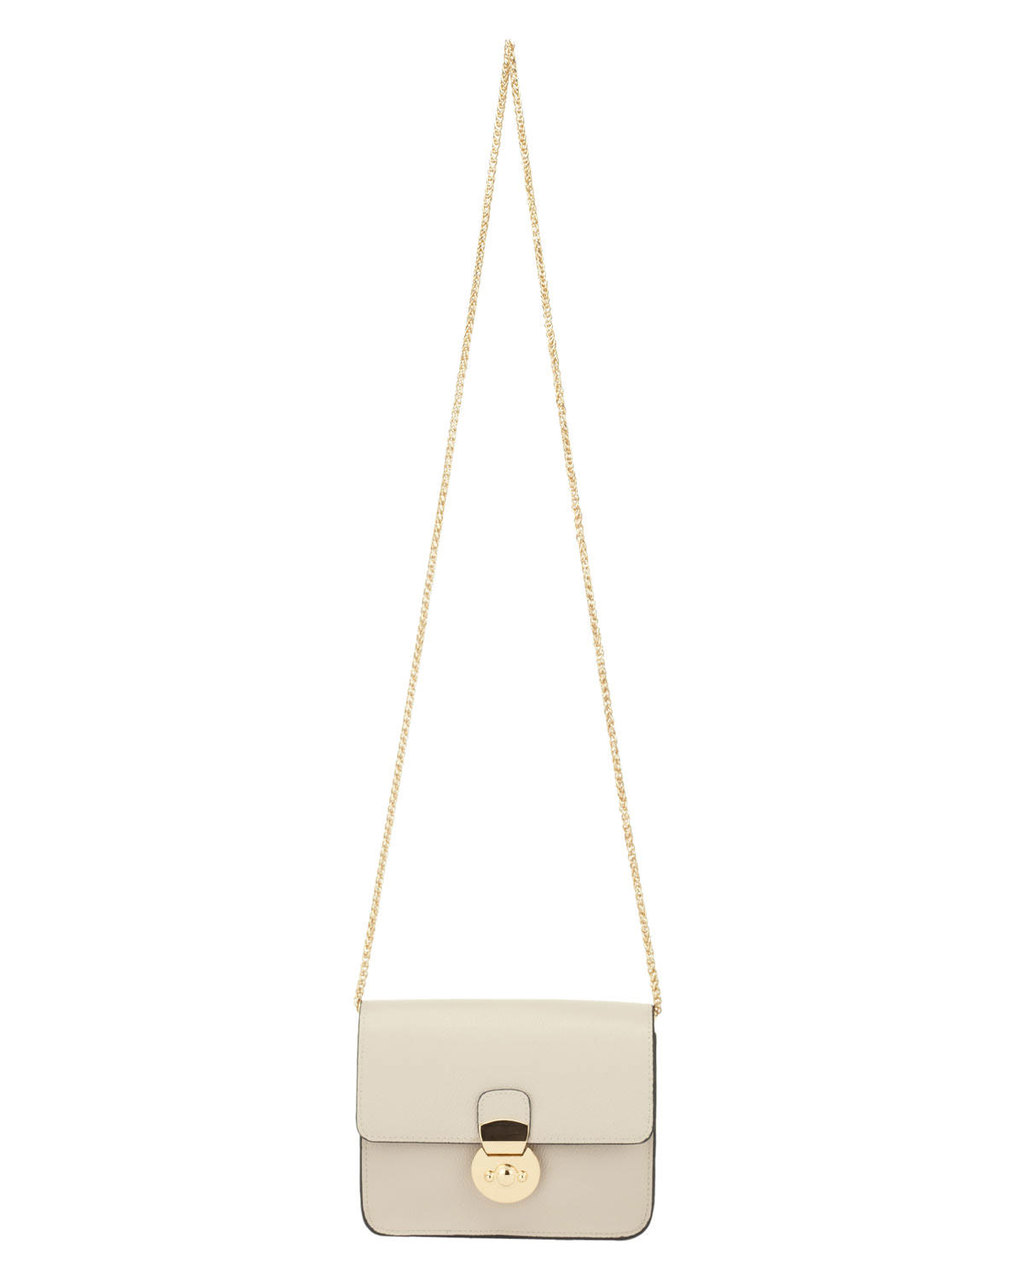 Marcie Crossbody Bag - predominant colour: ivory/cream; secondary colour: gold; occasions: casual, creative work; type of pattern: standard; style: messenger; length: across body/long; size: small; material: faux leather; pattern: plain; finish: plain; embellishment: chain/metal; season: s/s 2016; wardrobe: highlight